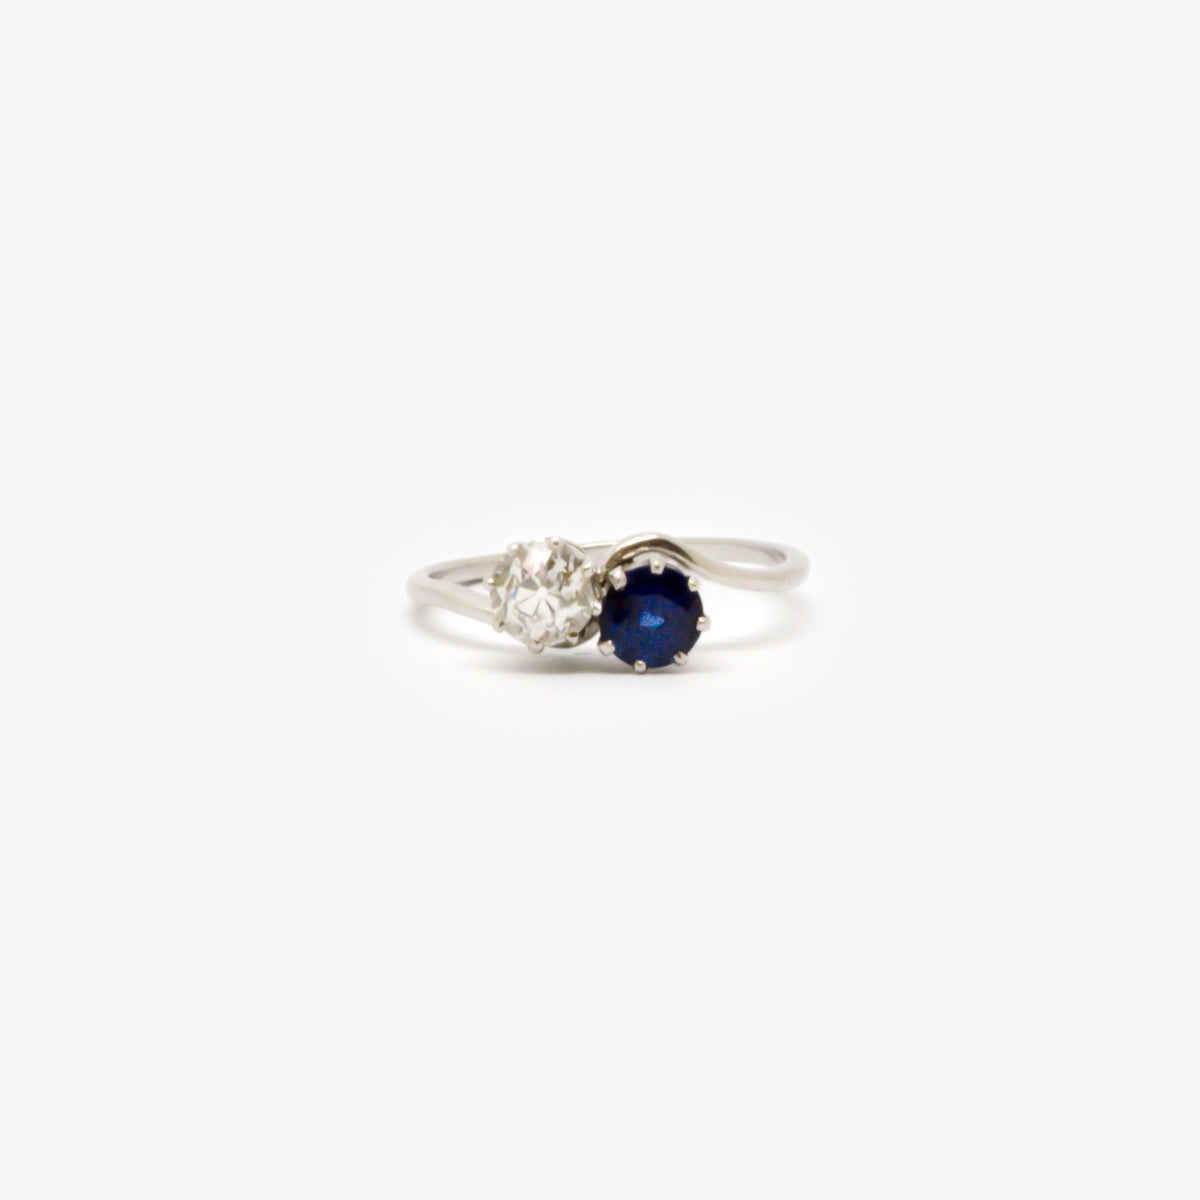 Antique Diamond & Sapphire Crossover Ring